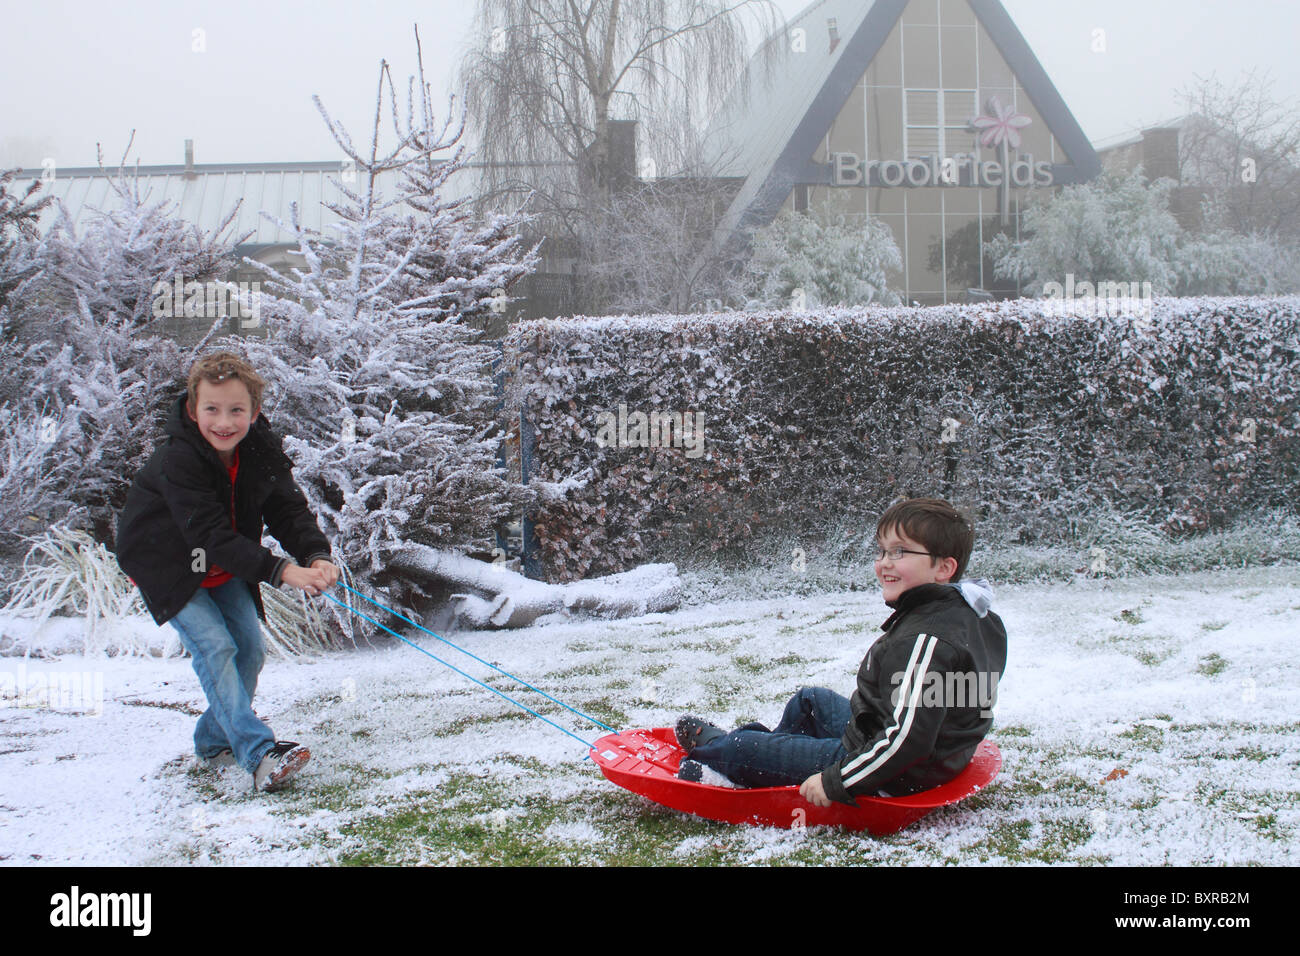 two nine year-old-boys playing in the artificial snow laid down by the Snow business company at Brookfields Garden - Stock Image